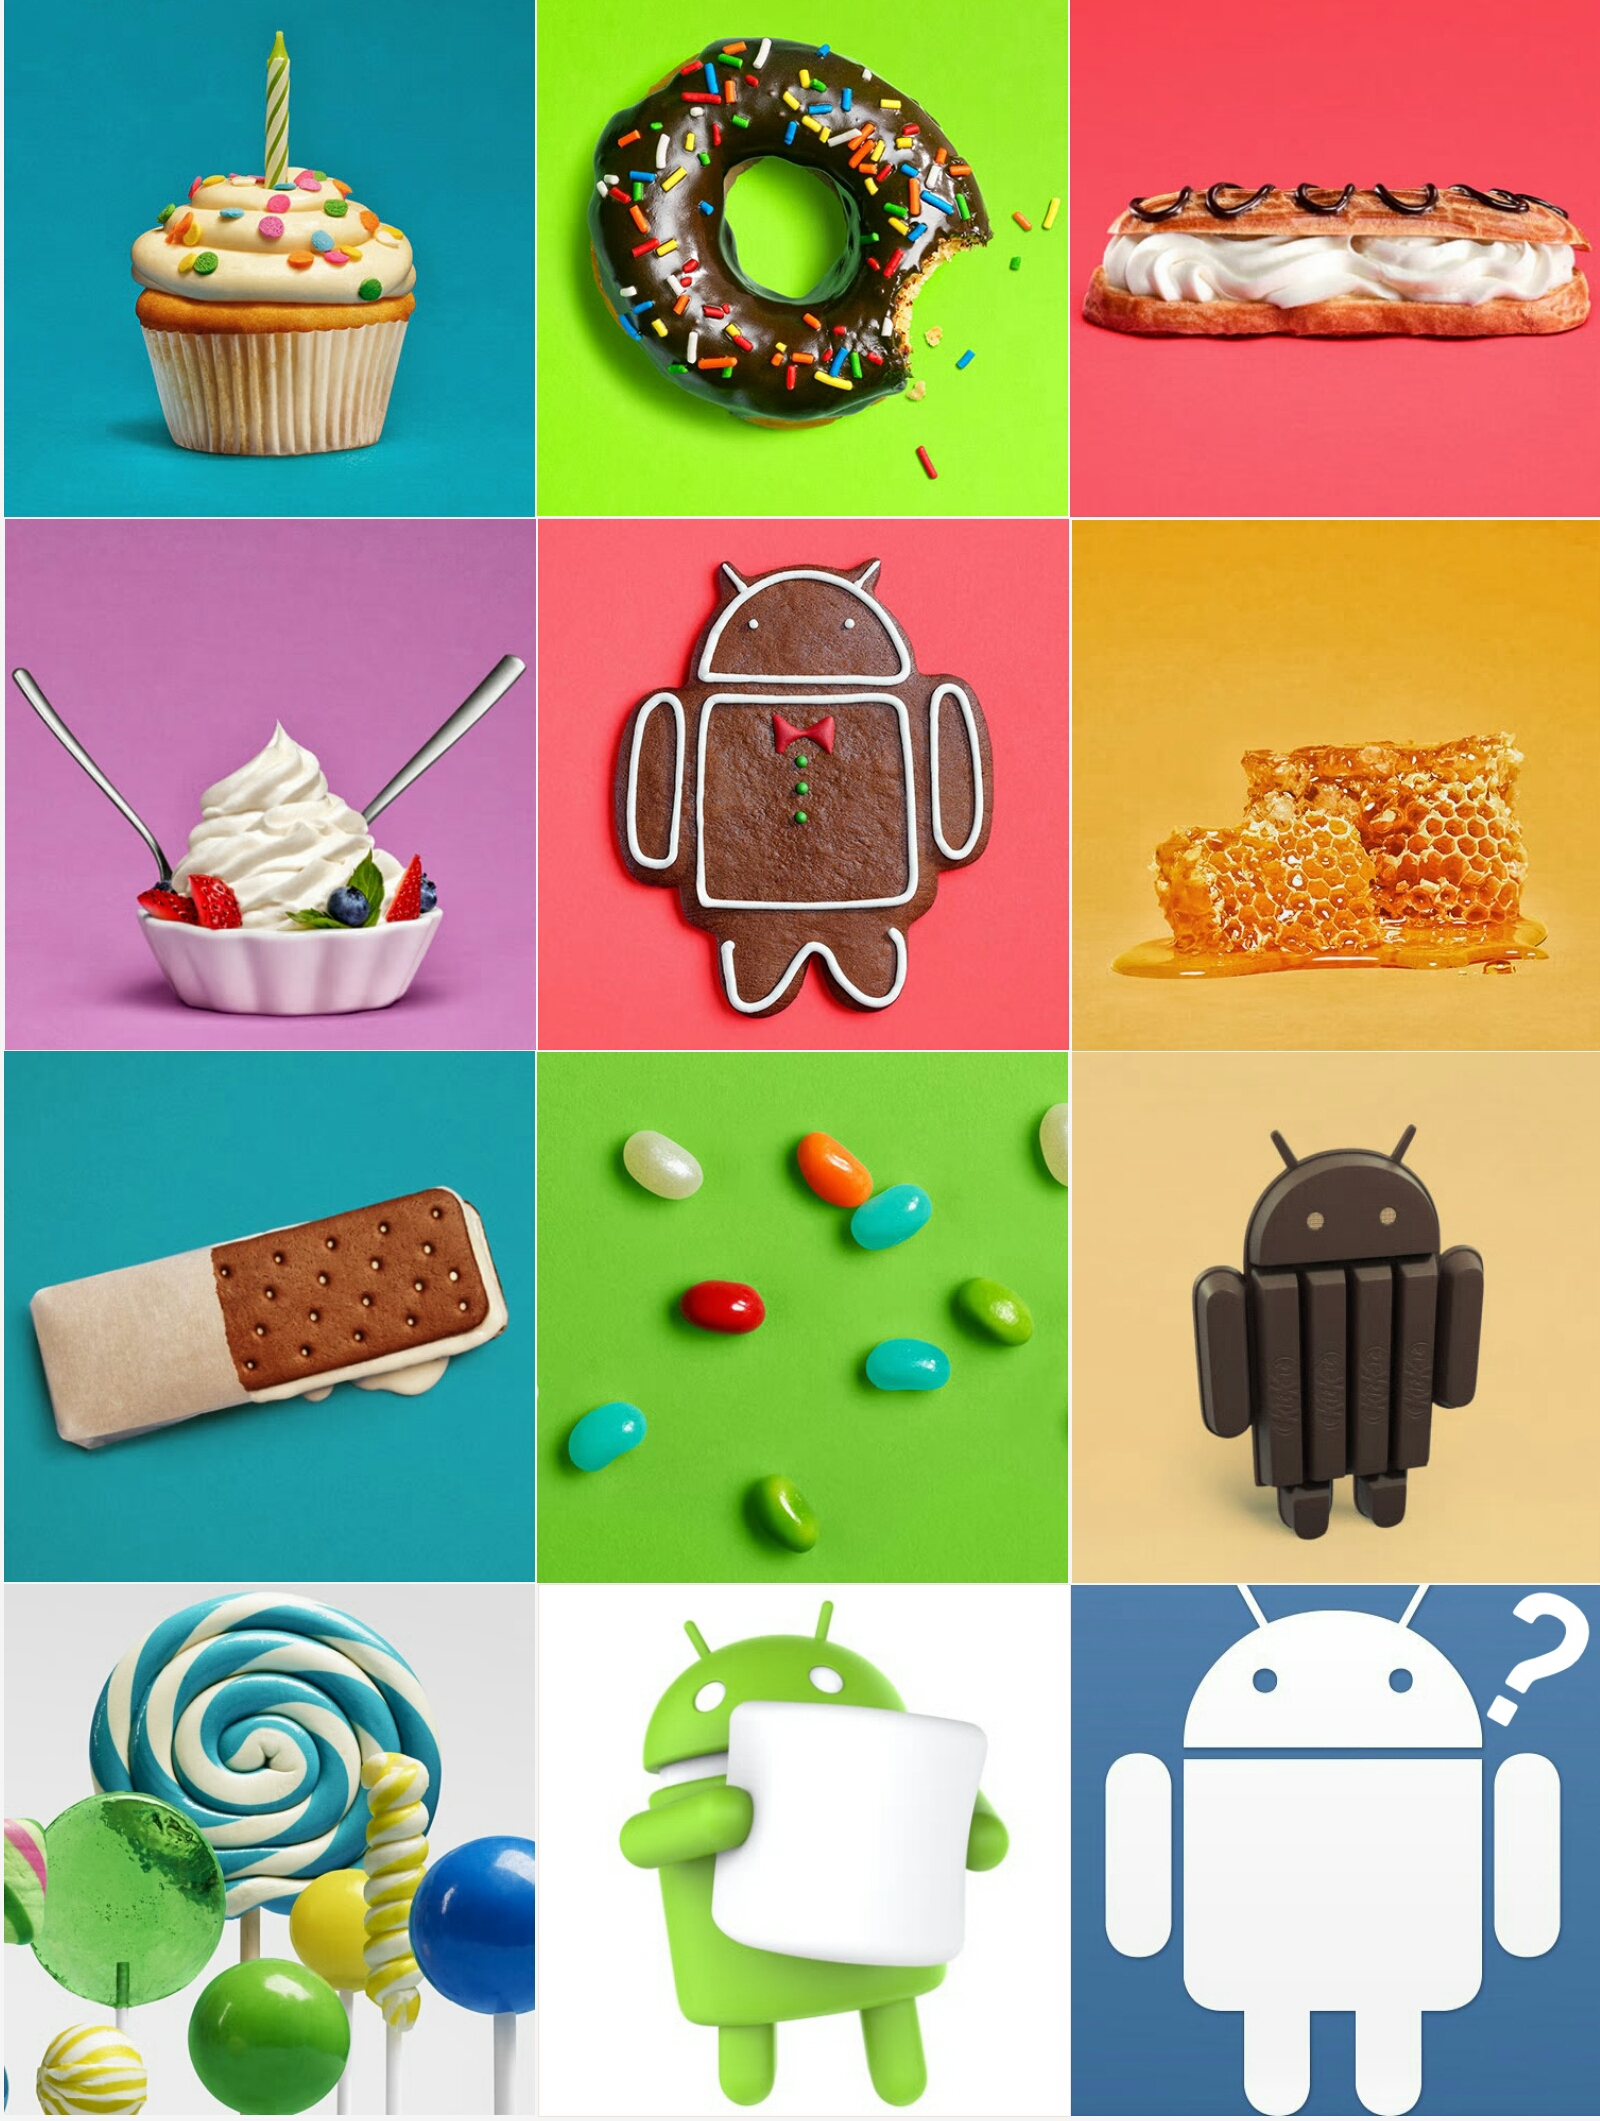 Android M's name is Marshmallow. Name of Android N? Comment.